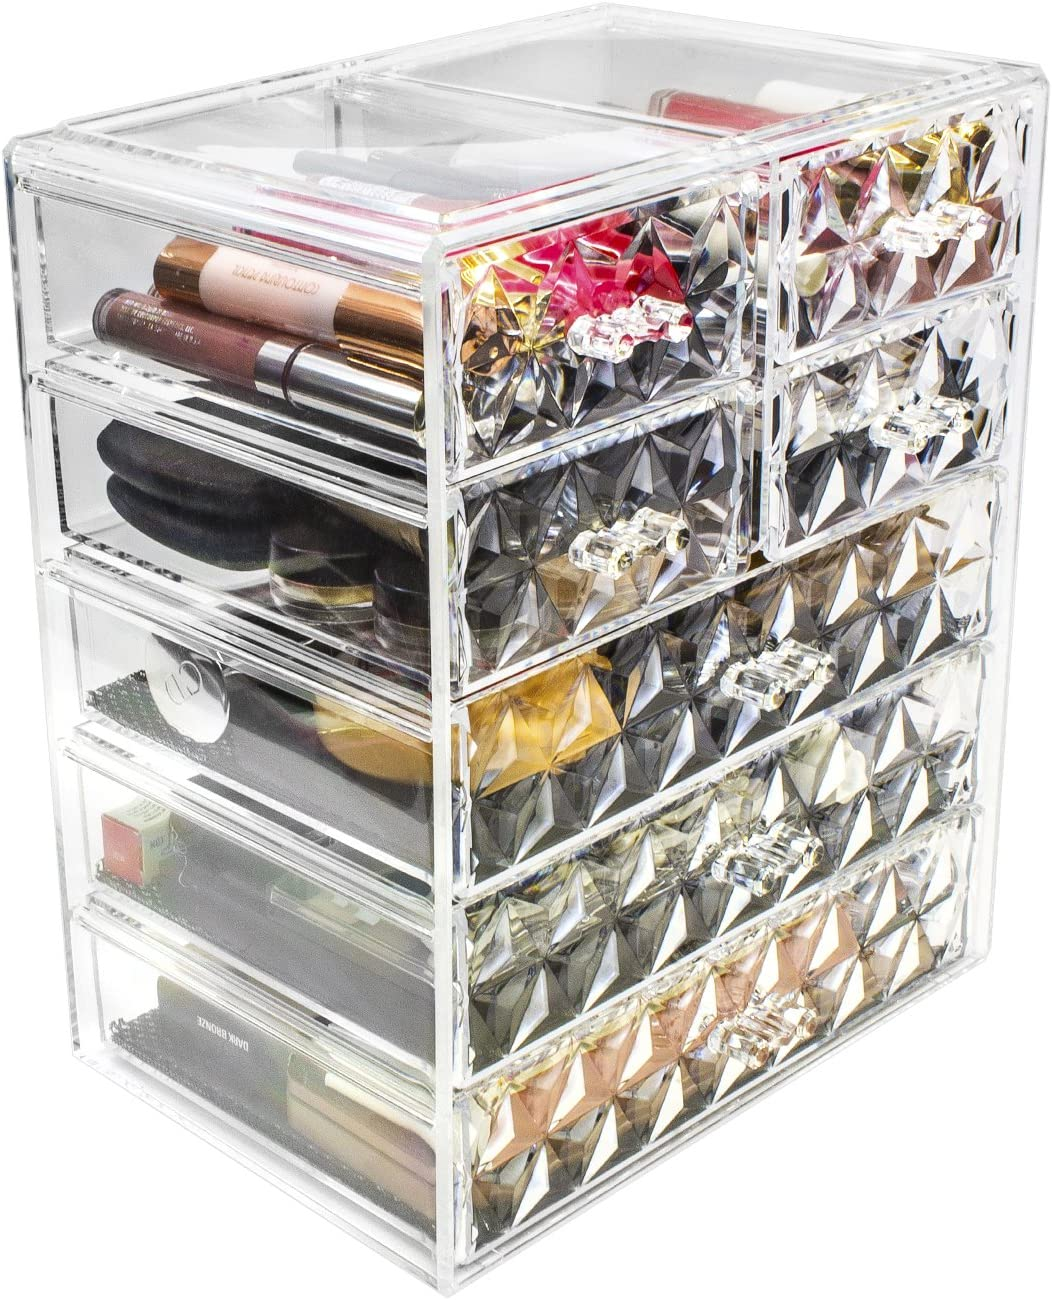 Sorbus Acrylic Cosmetic Makeup and Jewelry Storage Case Display - Spacious Design - Great for Bathroom, Dresser, Vanity and Countertop, Diamond Pattern (3 Large/4 Small Drawers)